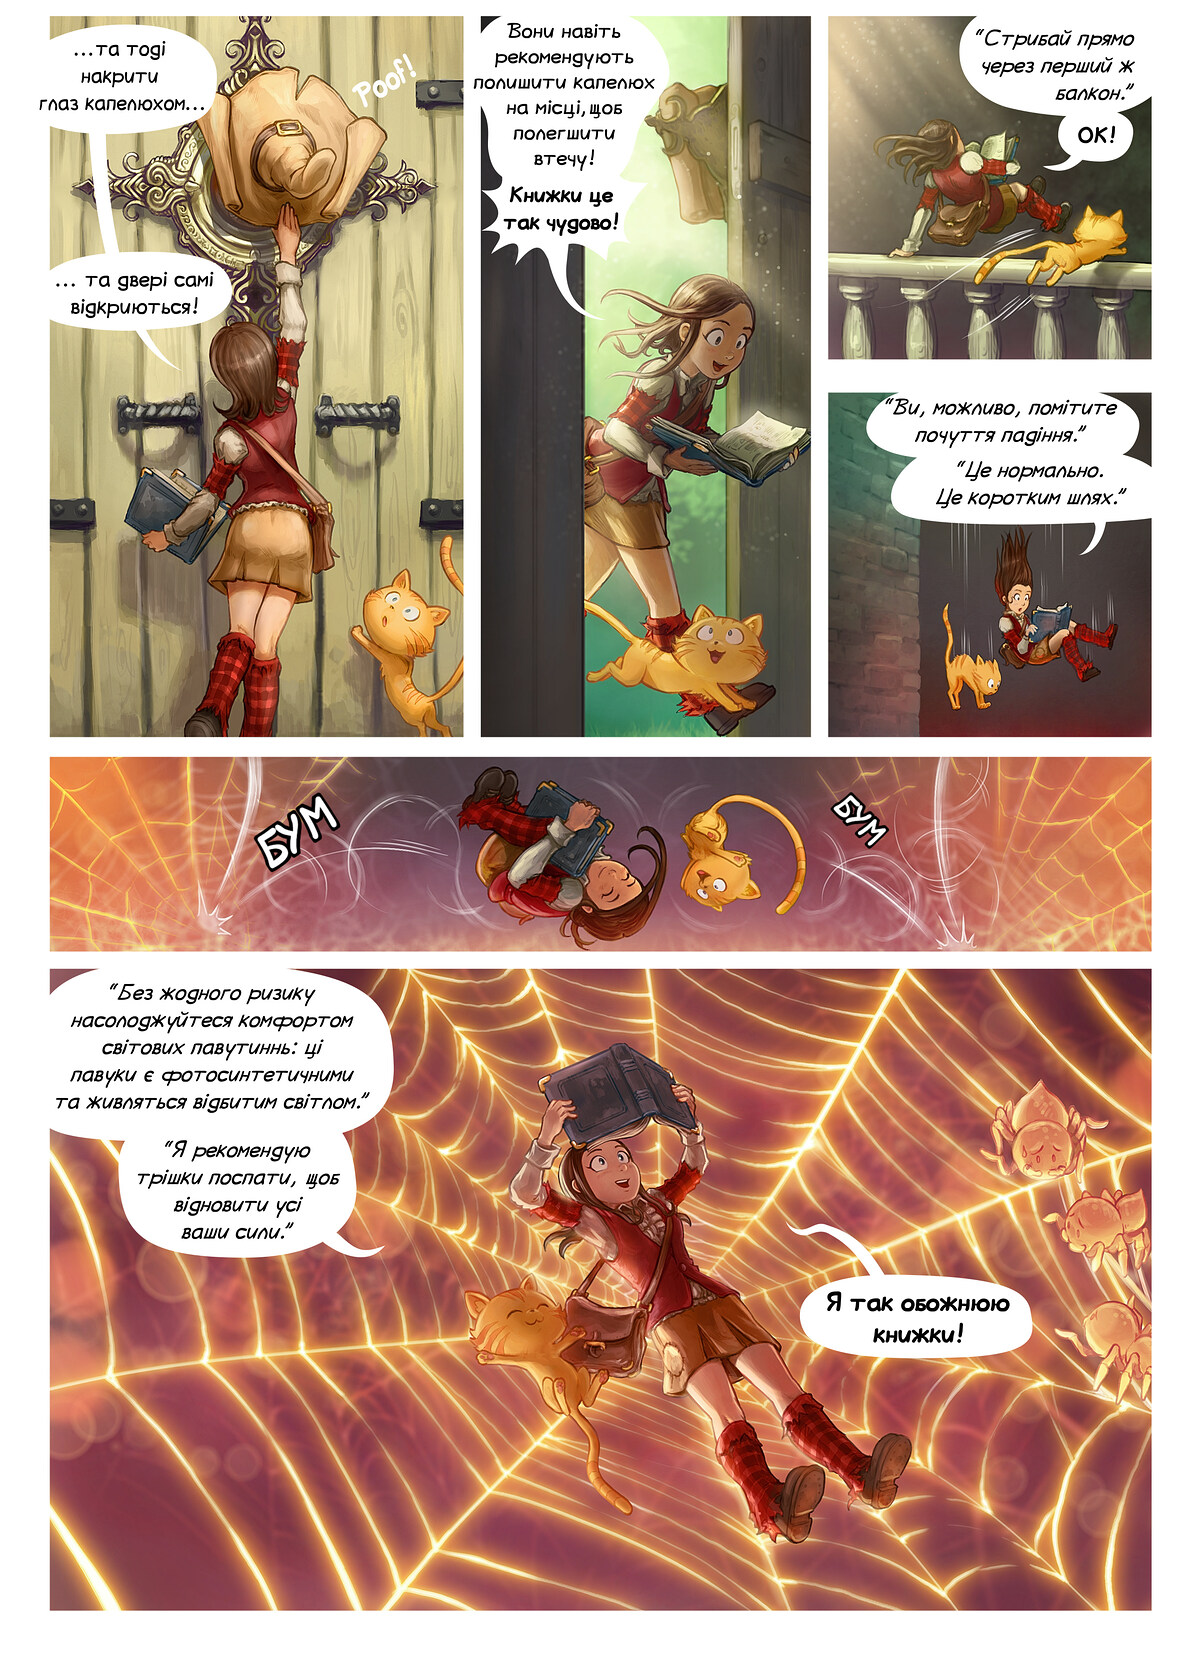 A webcomic page of Pepper&Carrot, епізод 26 [uk], стор. 2